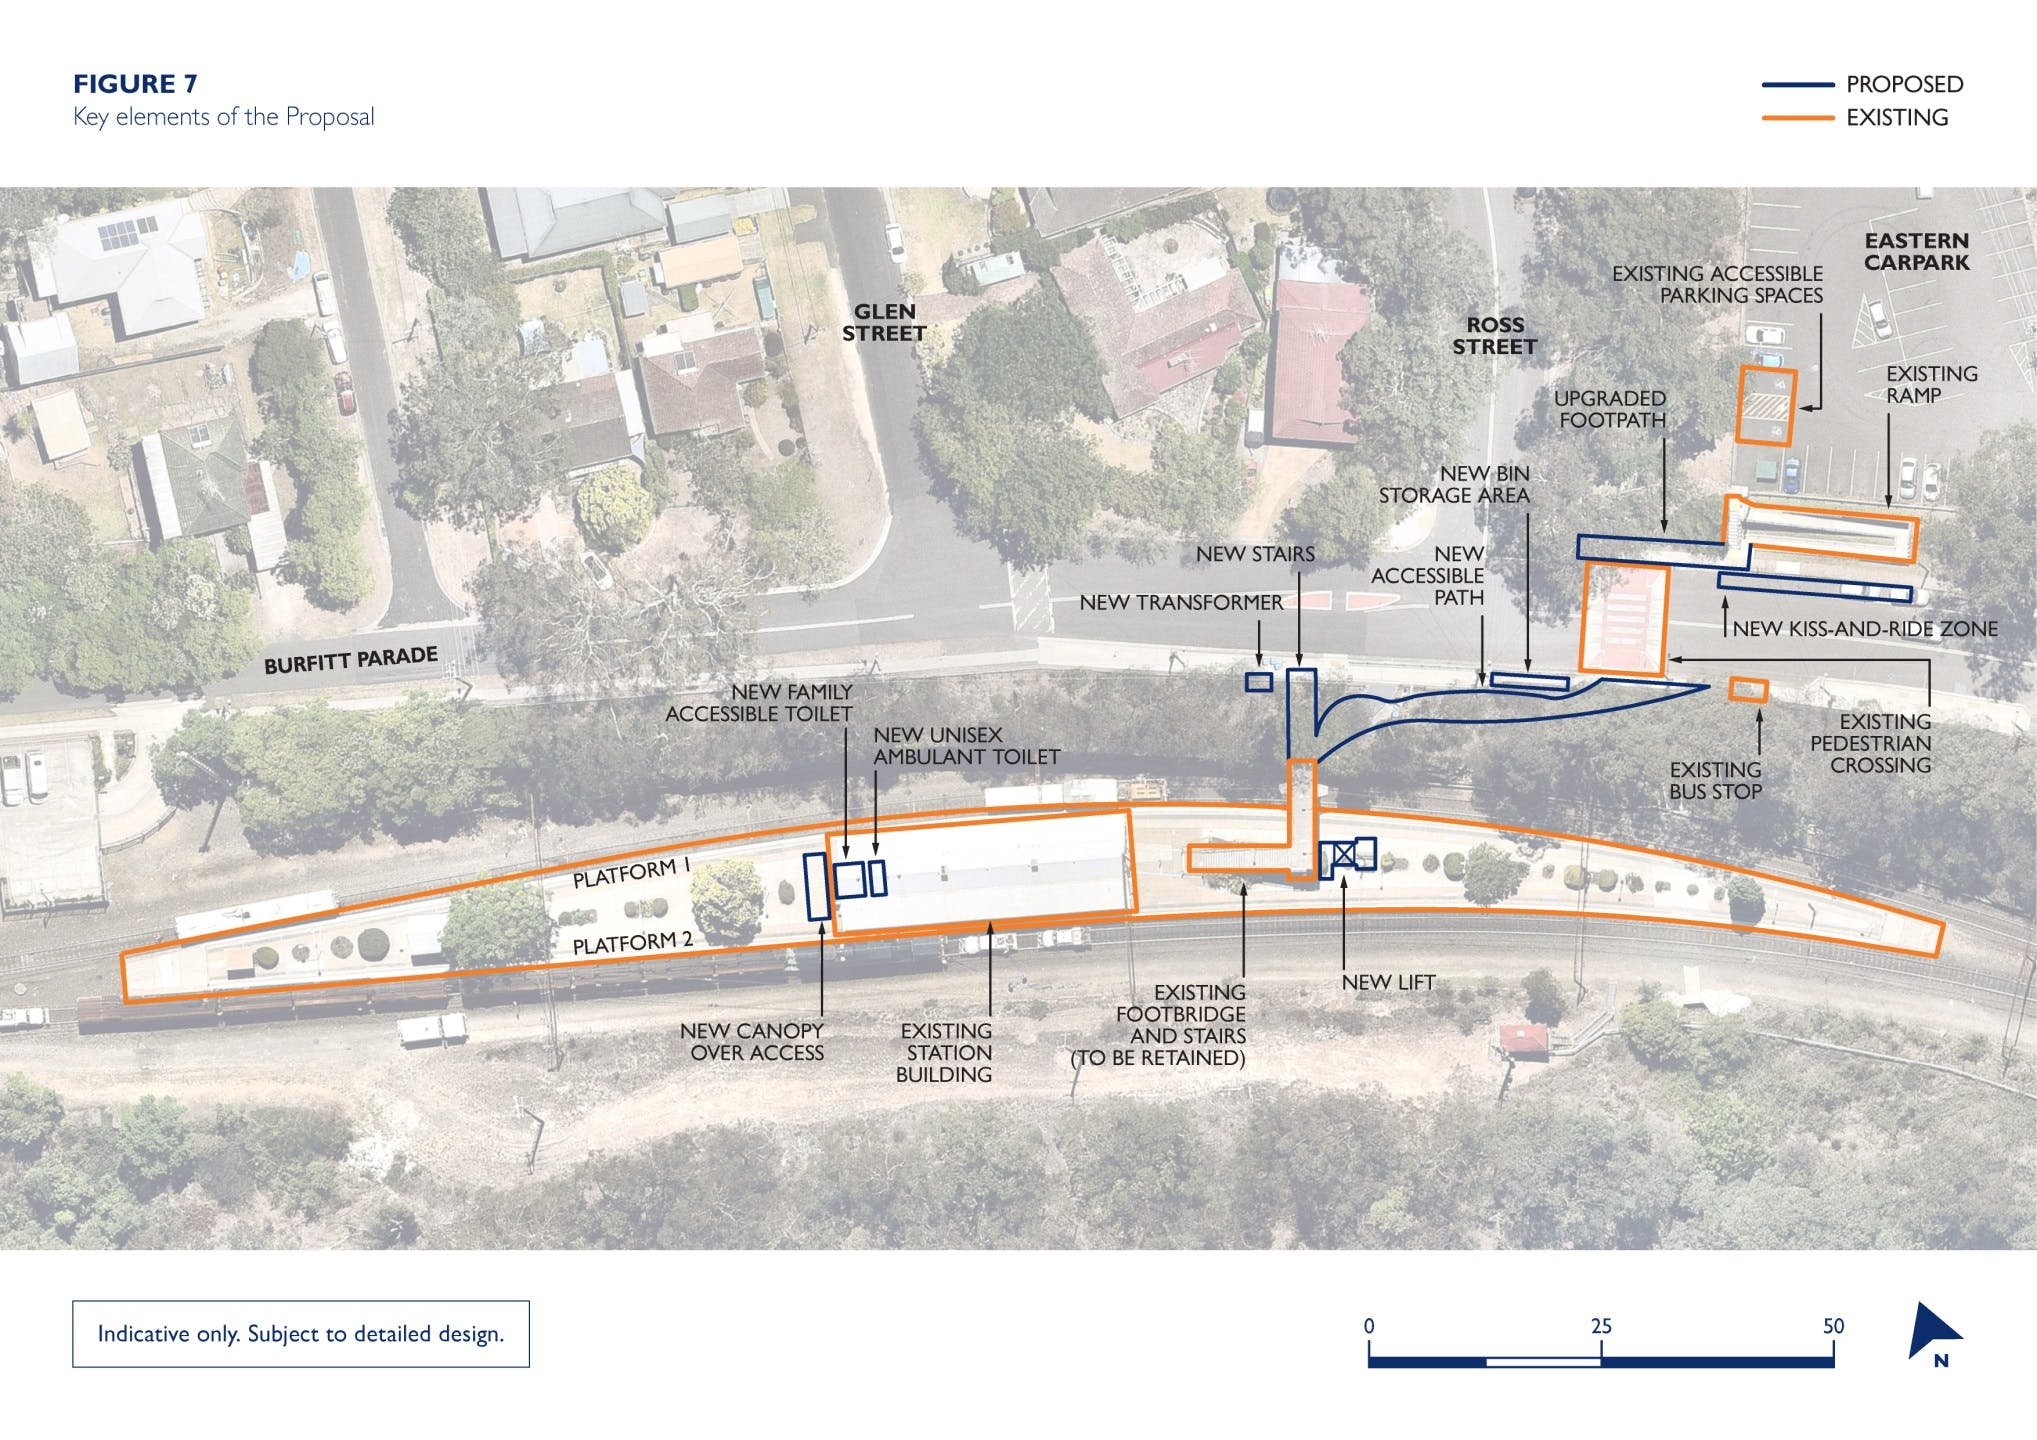 Key features map of the Glenbrook Station Upgrade - subject to detailed design